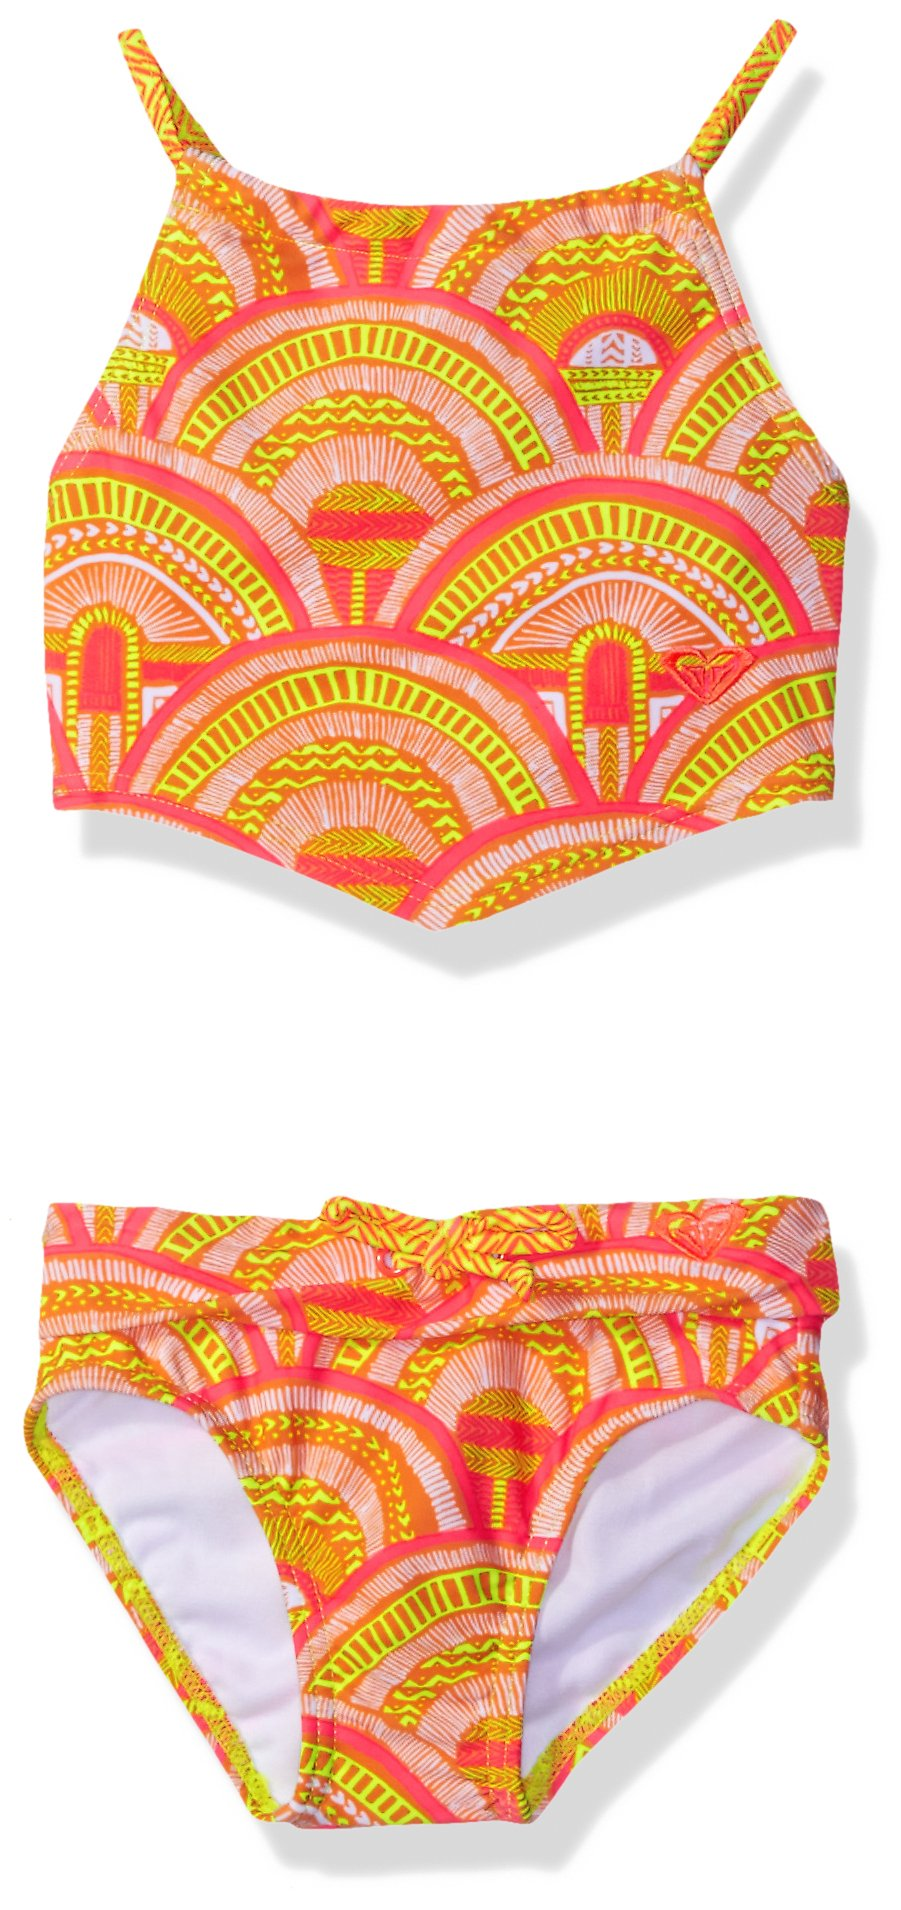 Roxy Little Girls' Sunrise Summer Bandana Set, Lemon Tonic, 5